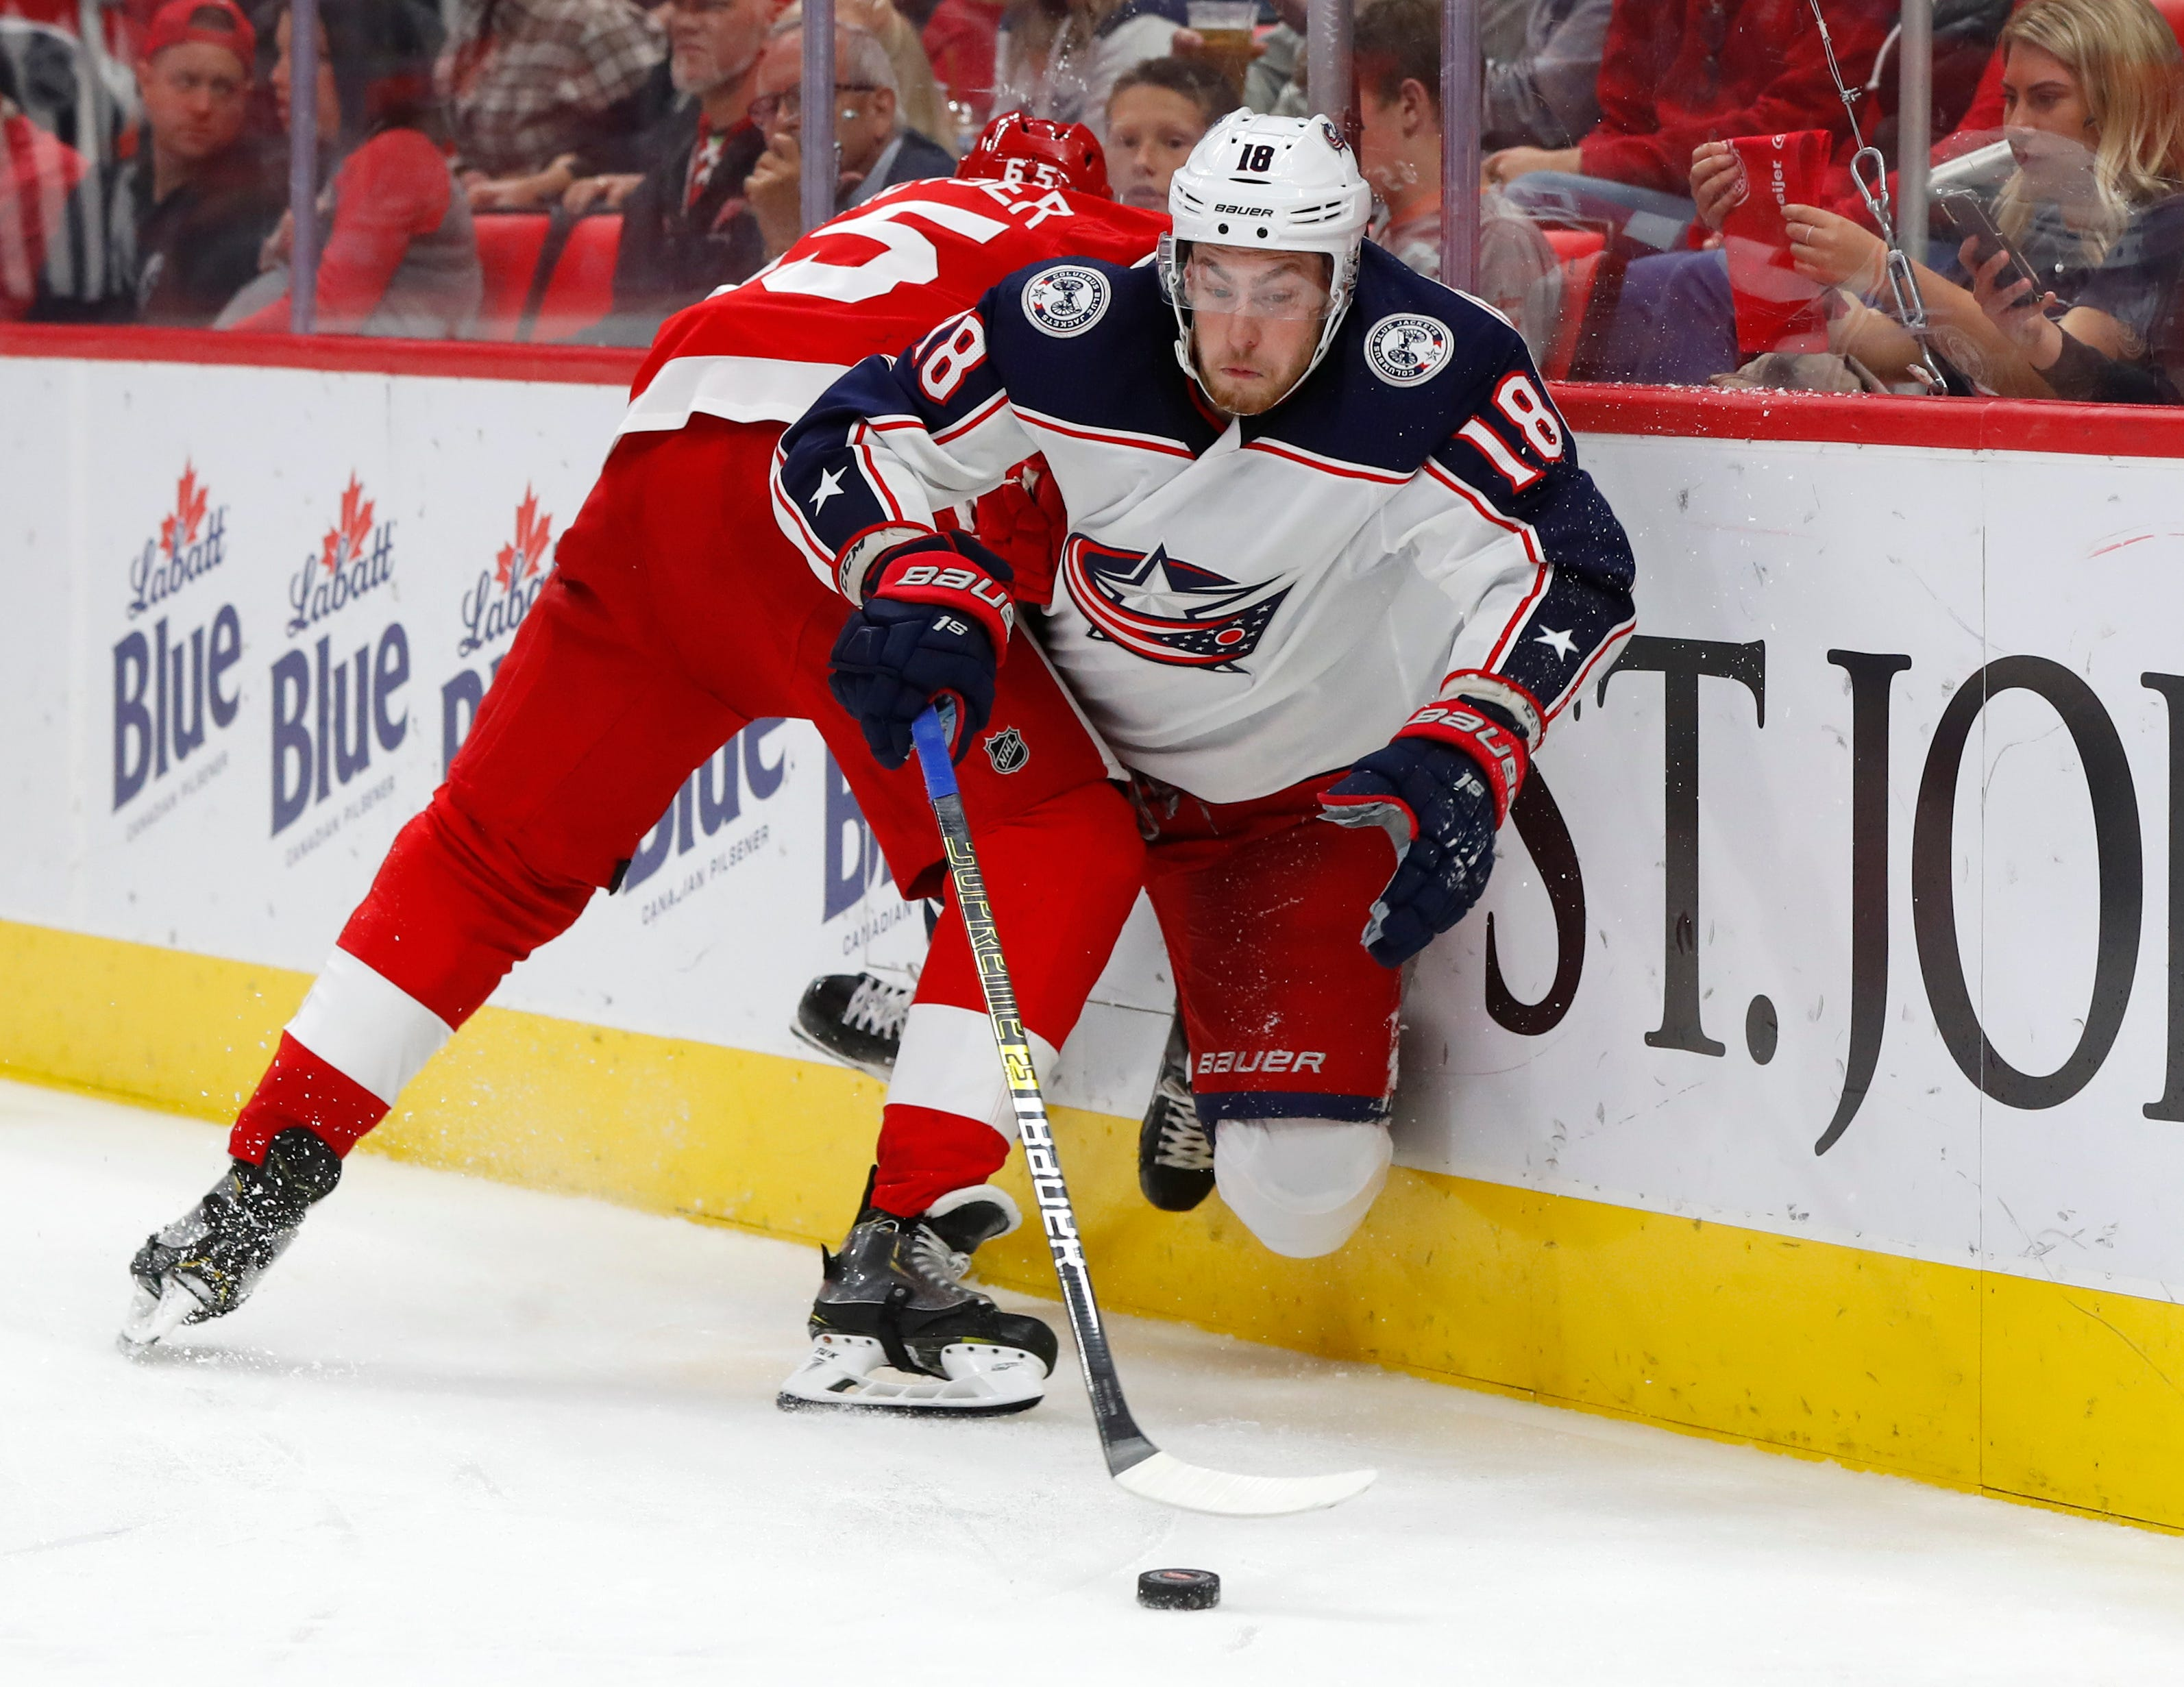 Panarin scores, lifts Blue Jackets to 3-2 OT win over Wings